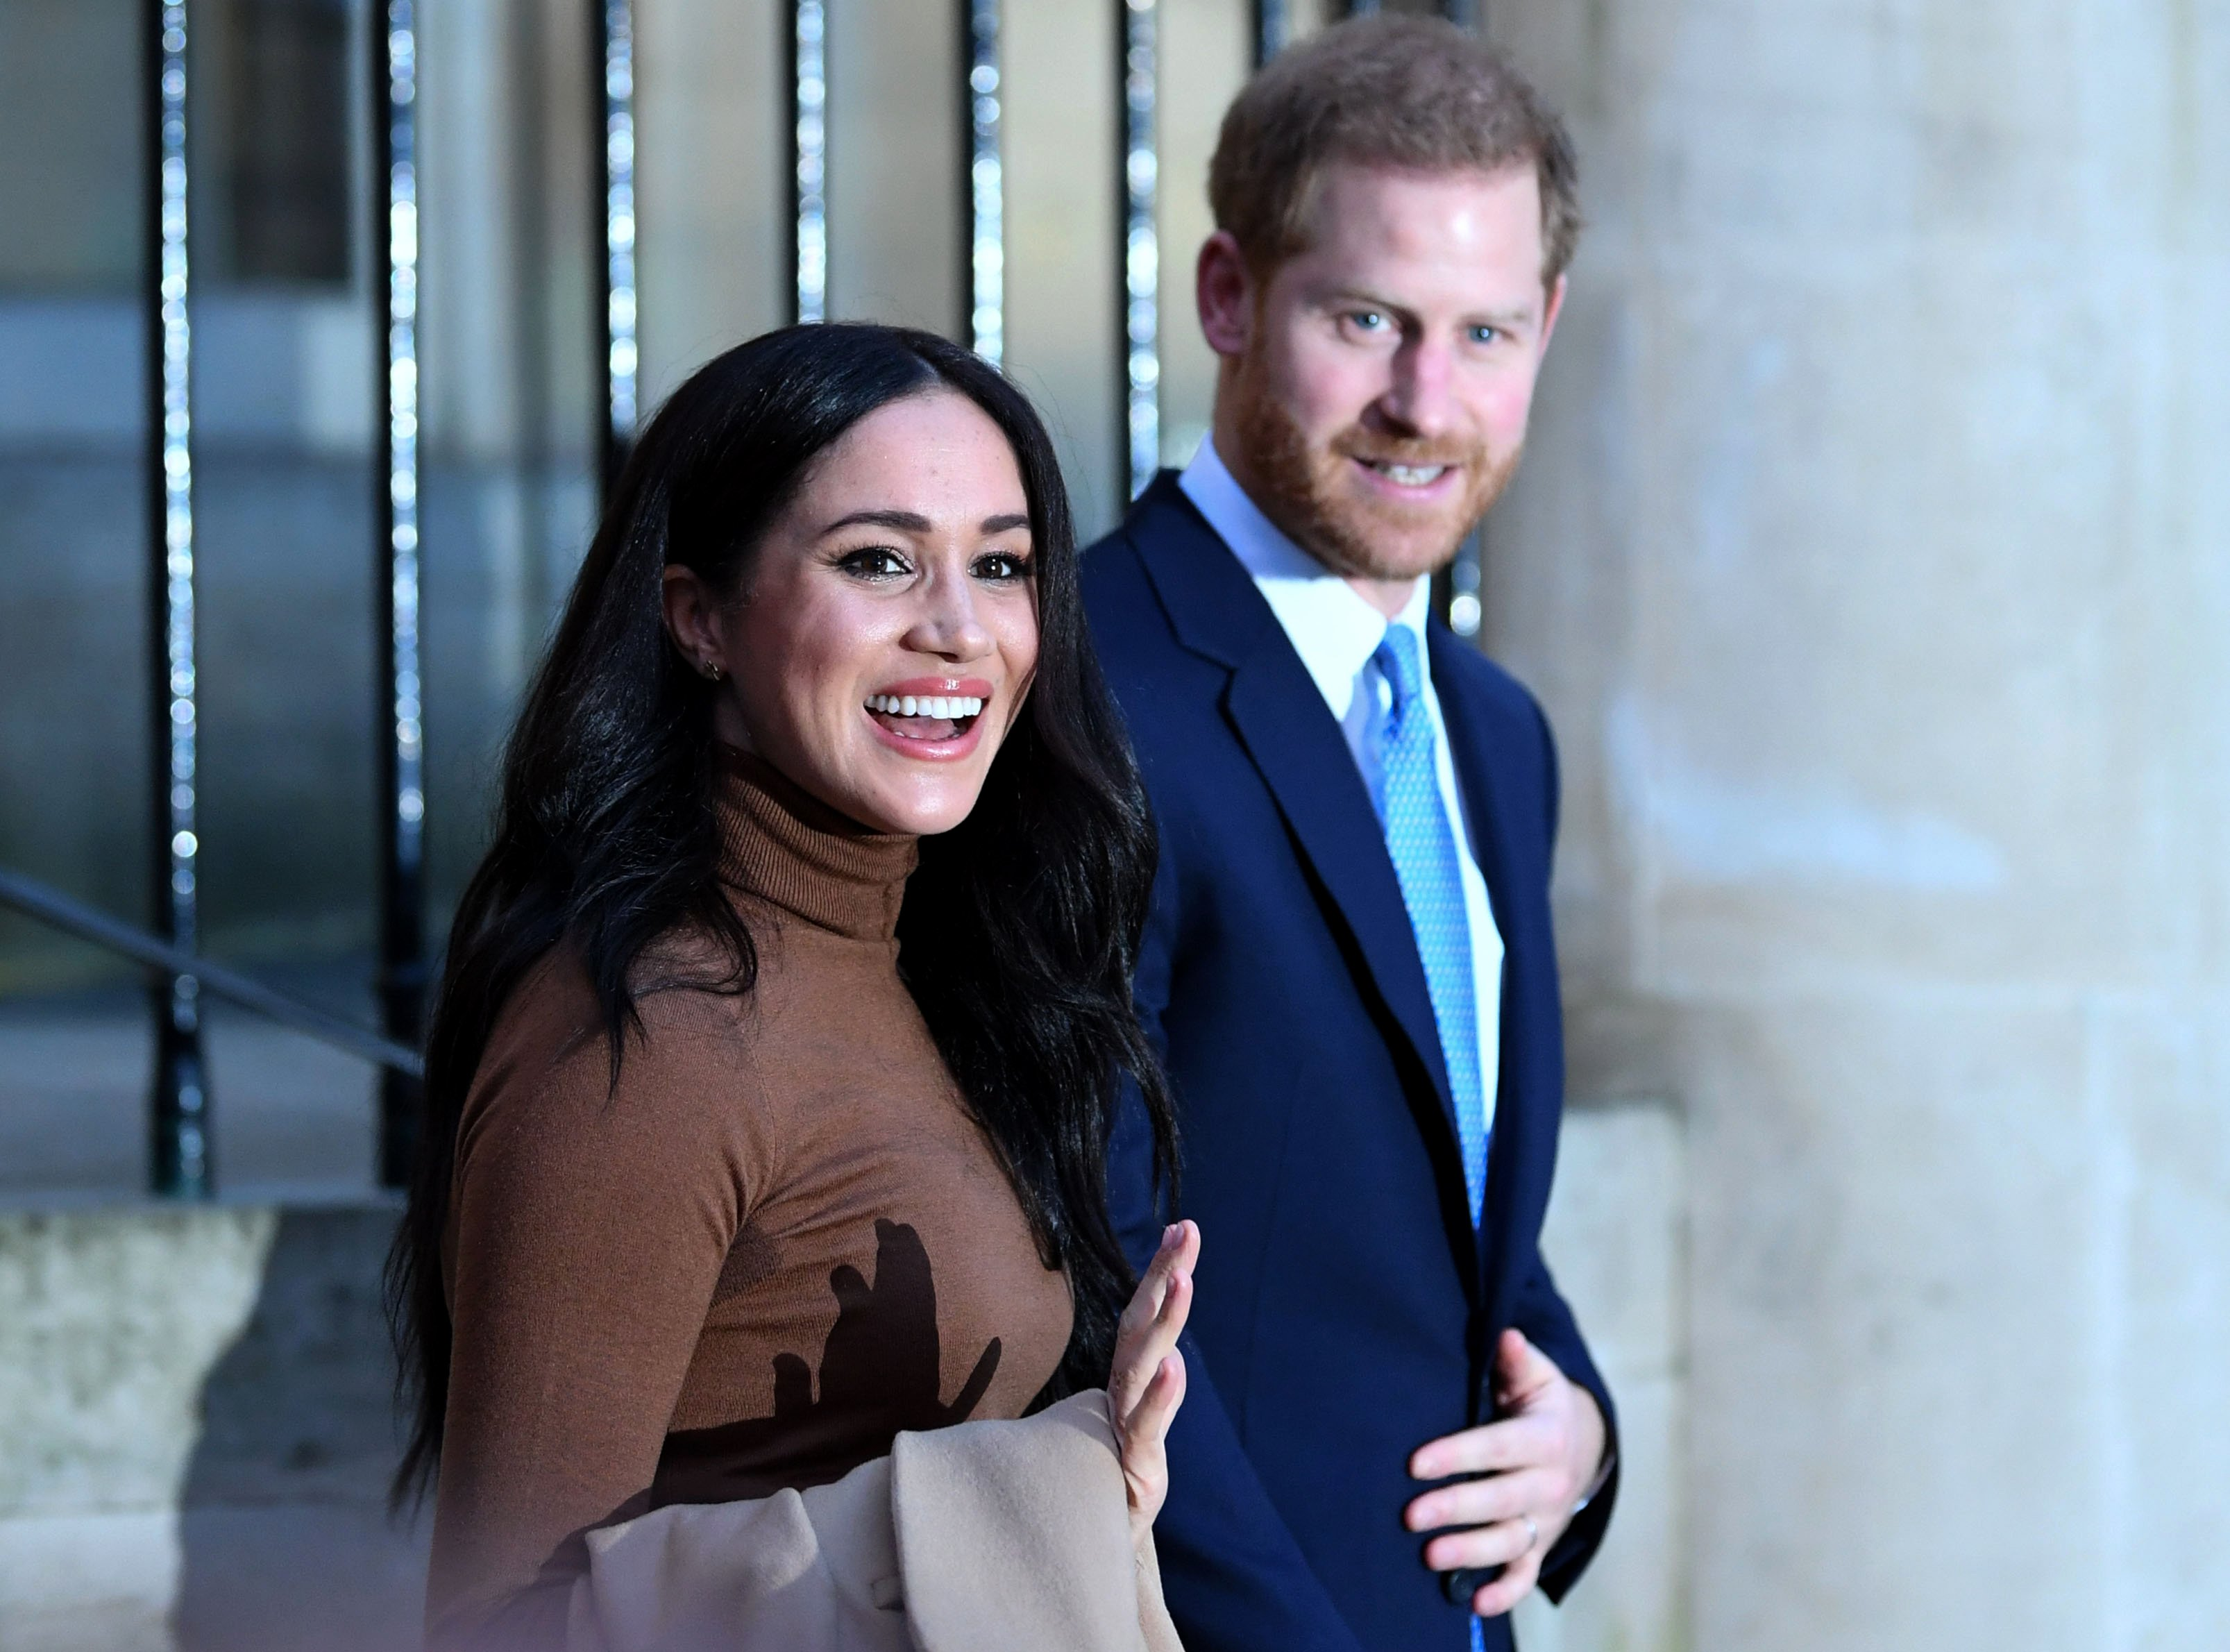 Prince Harry and Meghan Markle after their visit to Canada House, on January 7, 2020, in London, England. | Source: Getty Images.